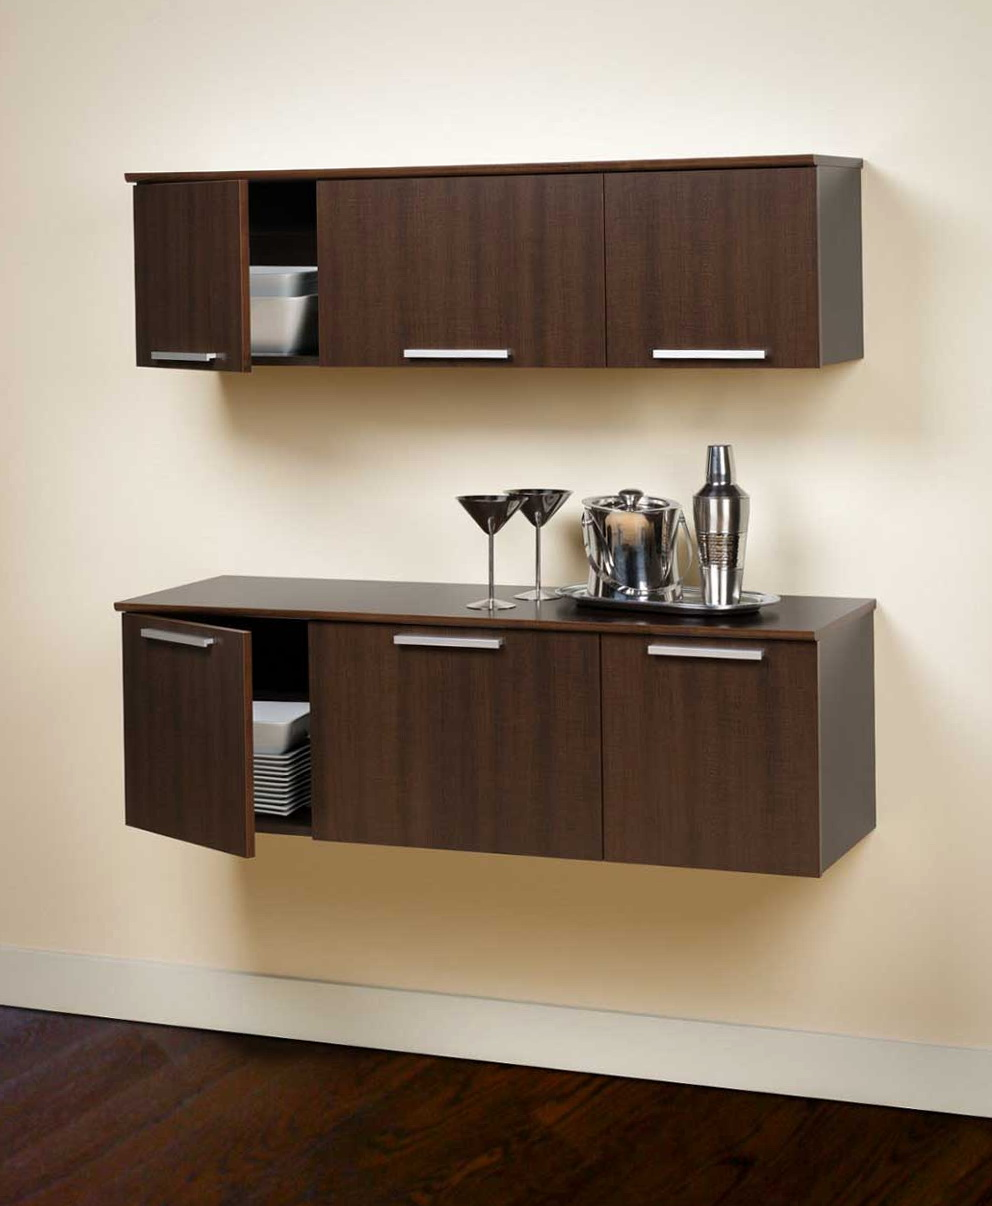 Wall Mounted Kitchen Cabinets Online India